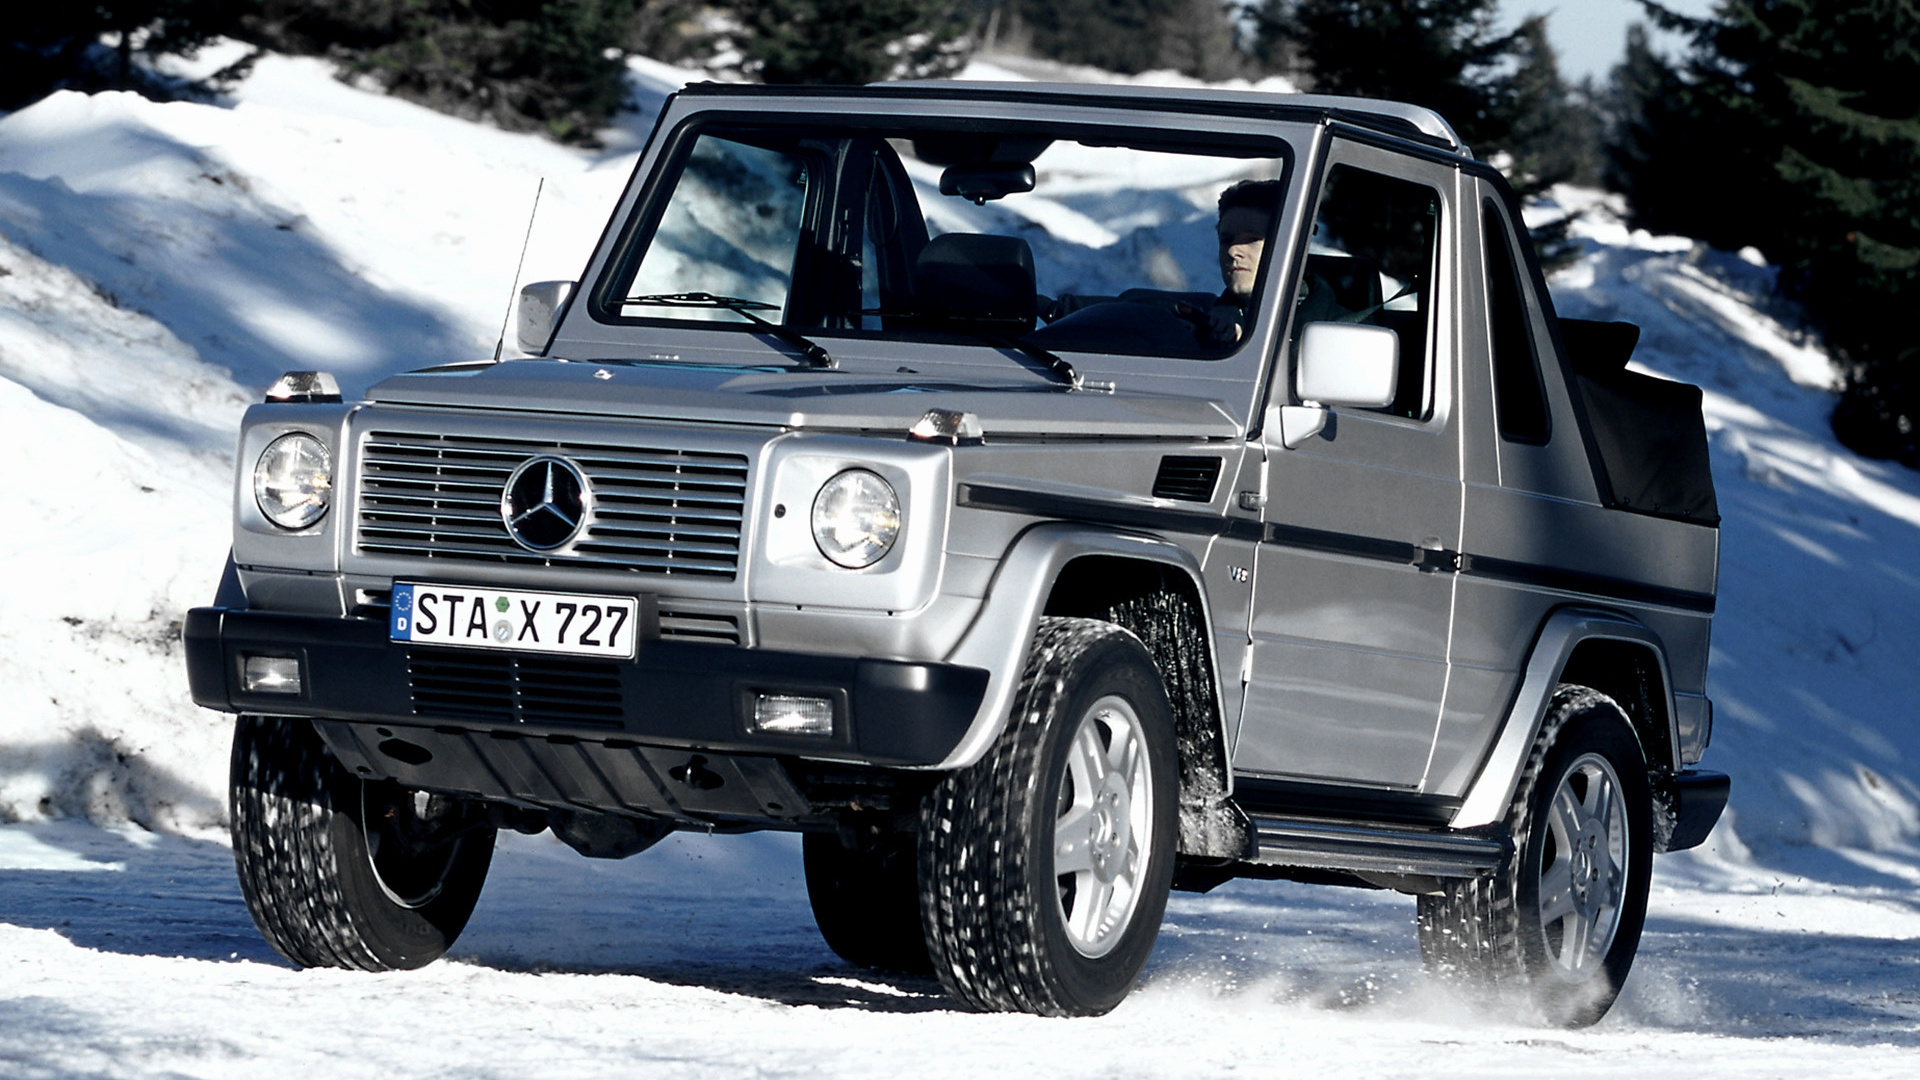 Mercedes benz g class cabriolet 1994 wallpapers and hd for Mercedes benz g class cabriolet